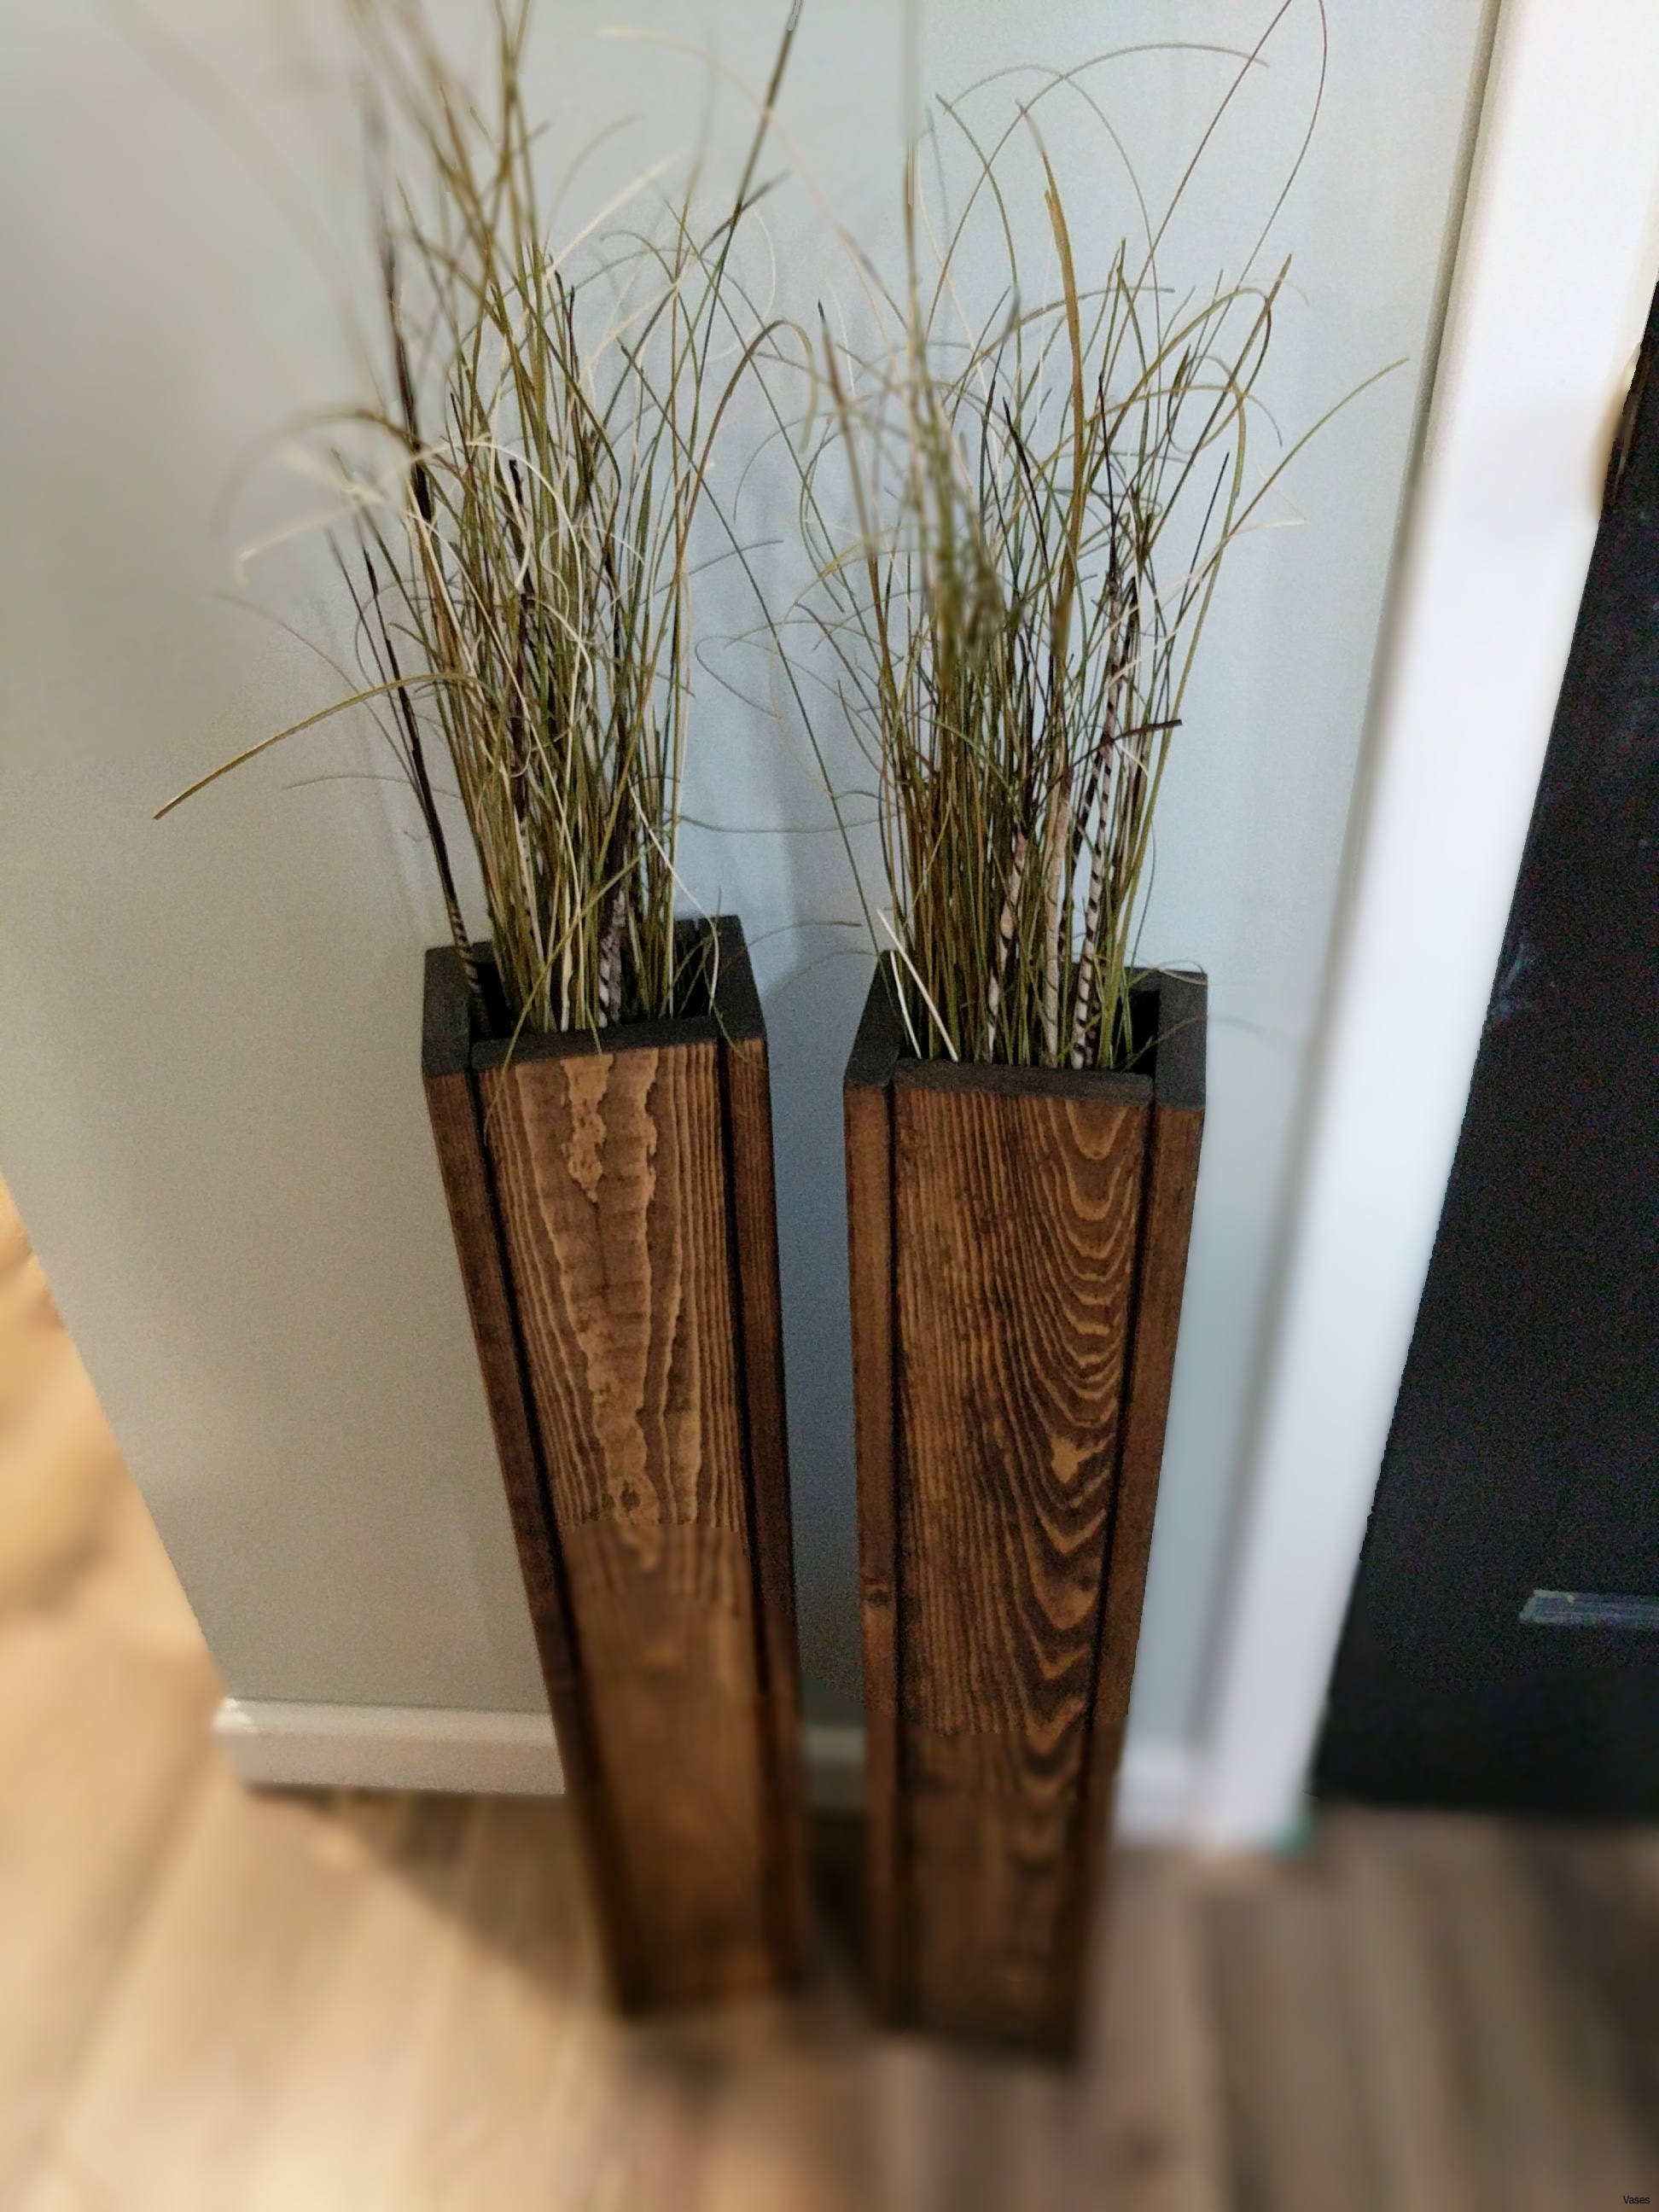 3 Feet Tall Vases Of Floor 95 Vases Vase with Twigs Red Sticks In A I 0d Floor and Lights In Floor 95 Vases Vase with Twigs Red Sticks In A I 0d Floor and Lights